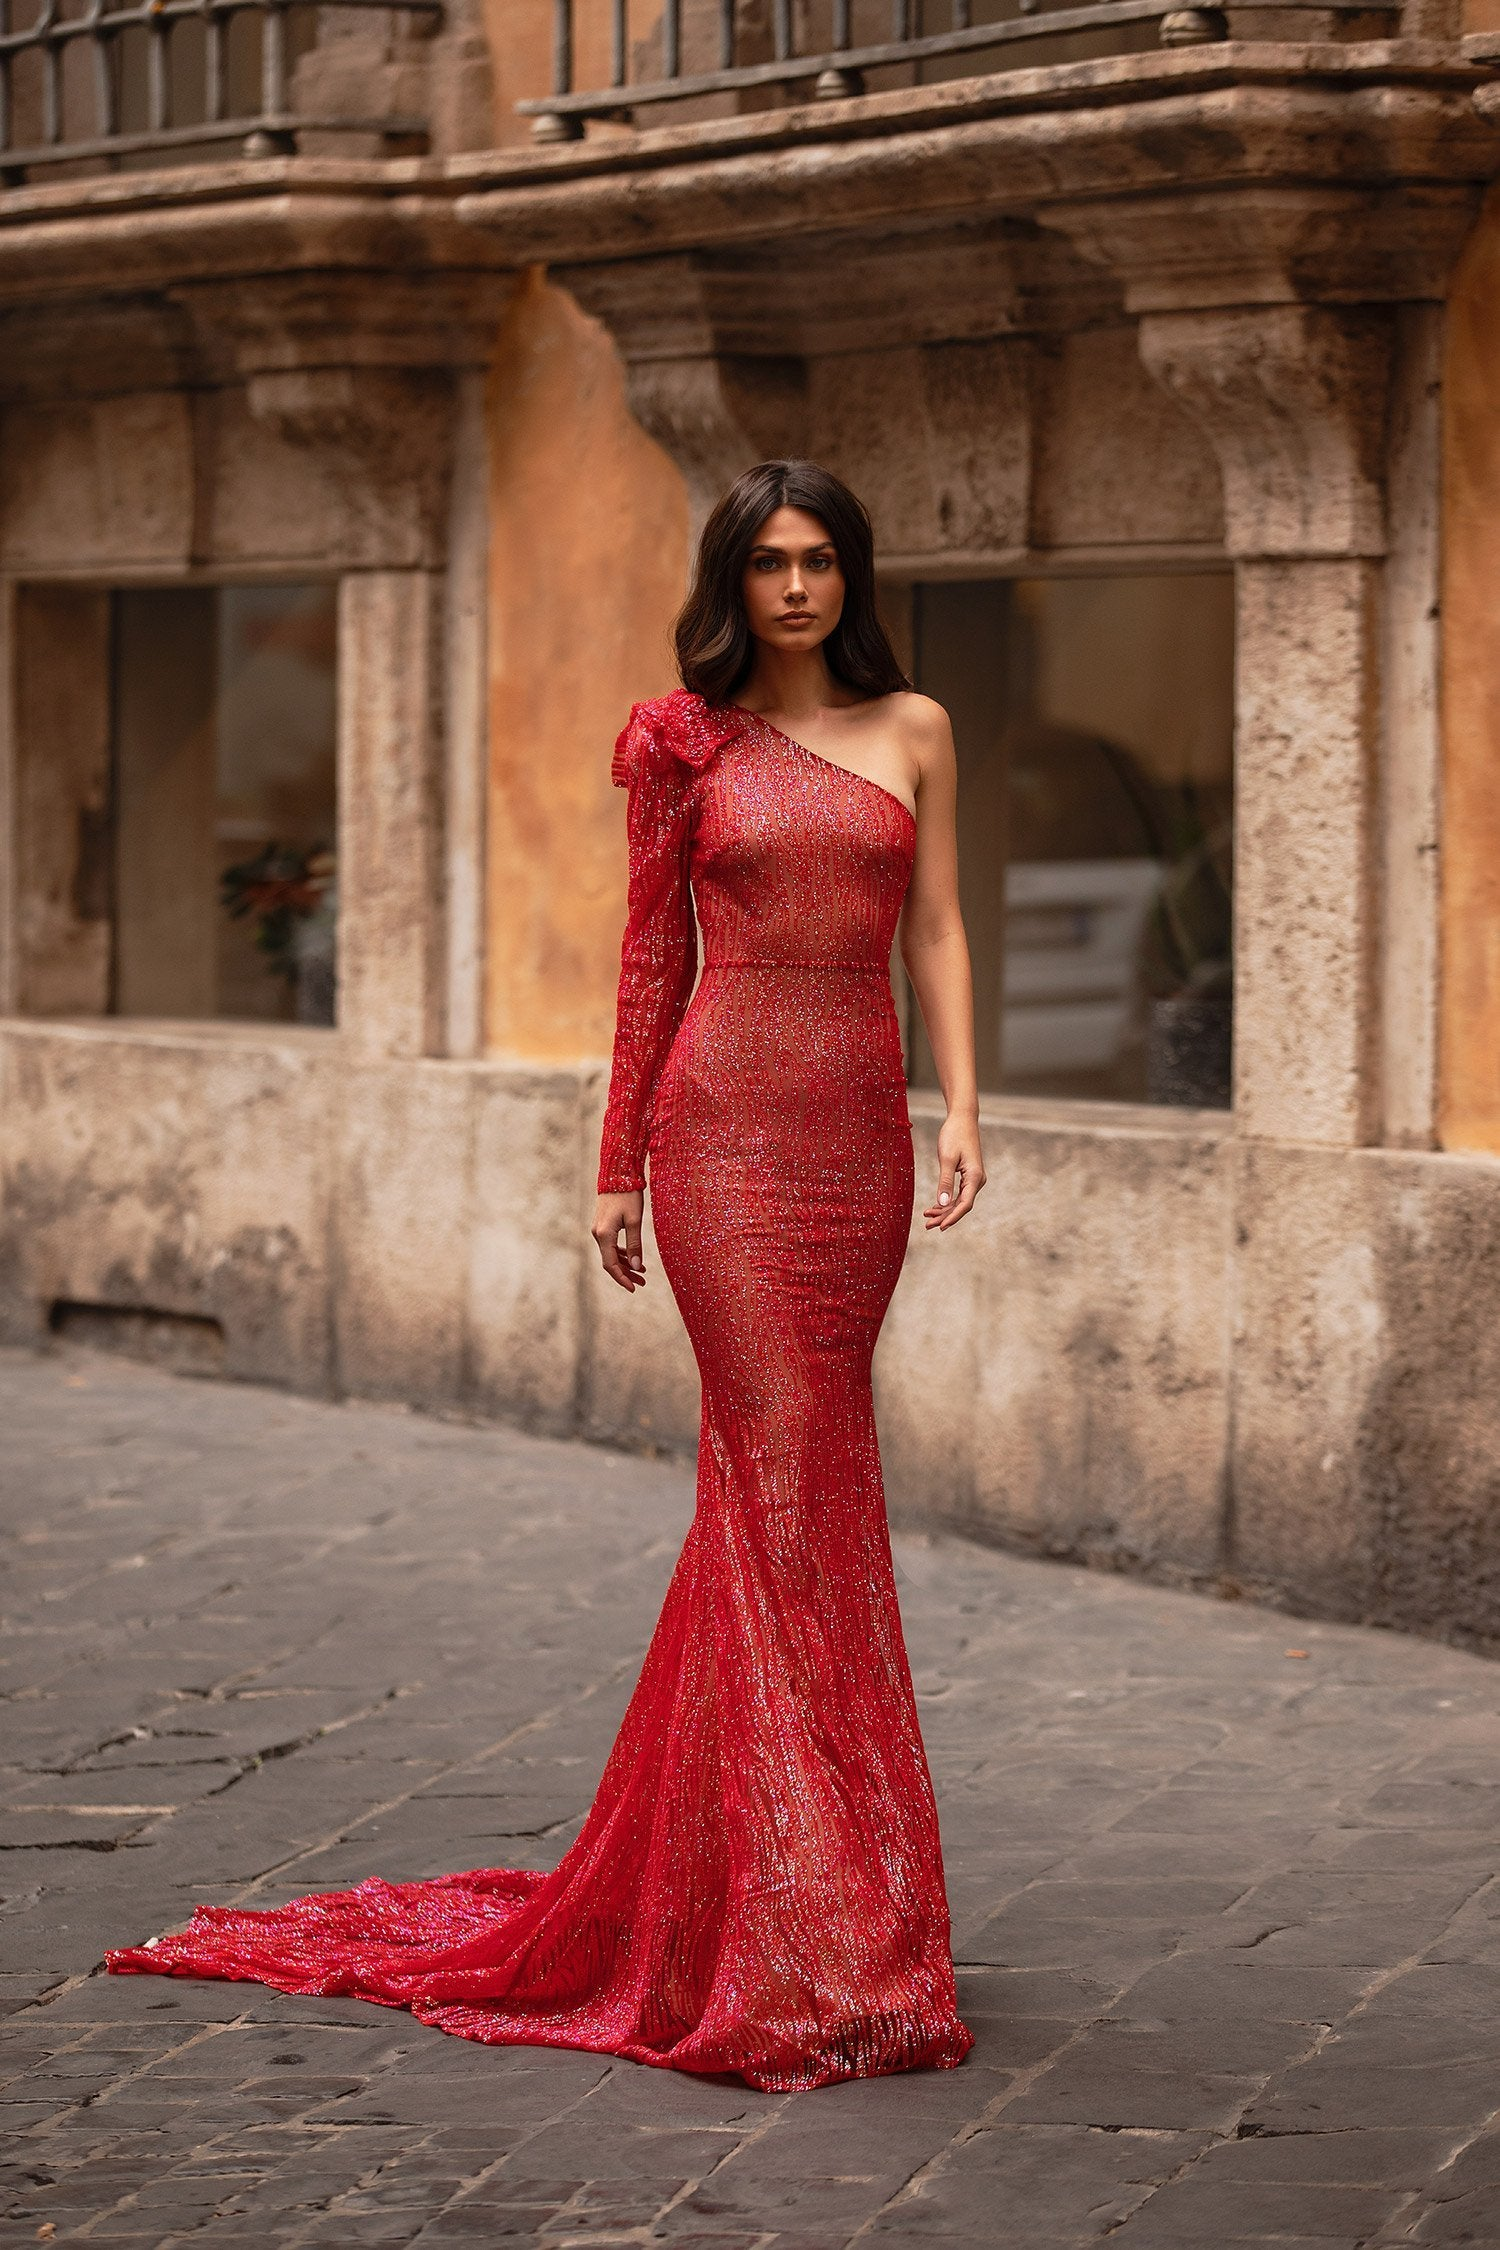 Tatiana - Red Glitter One-Shoulder Gown with Mermaid Train